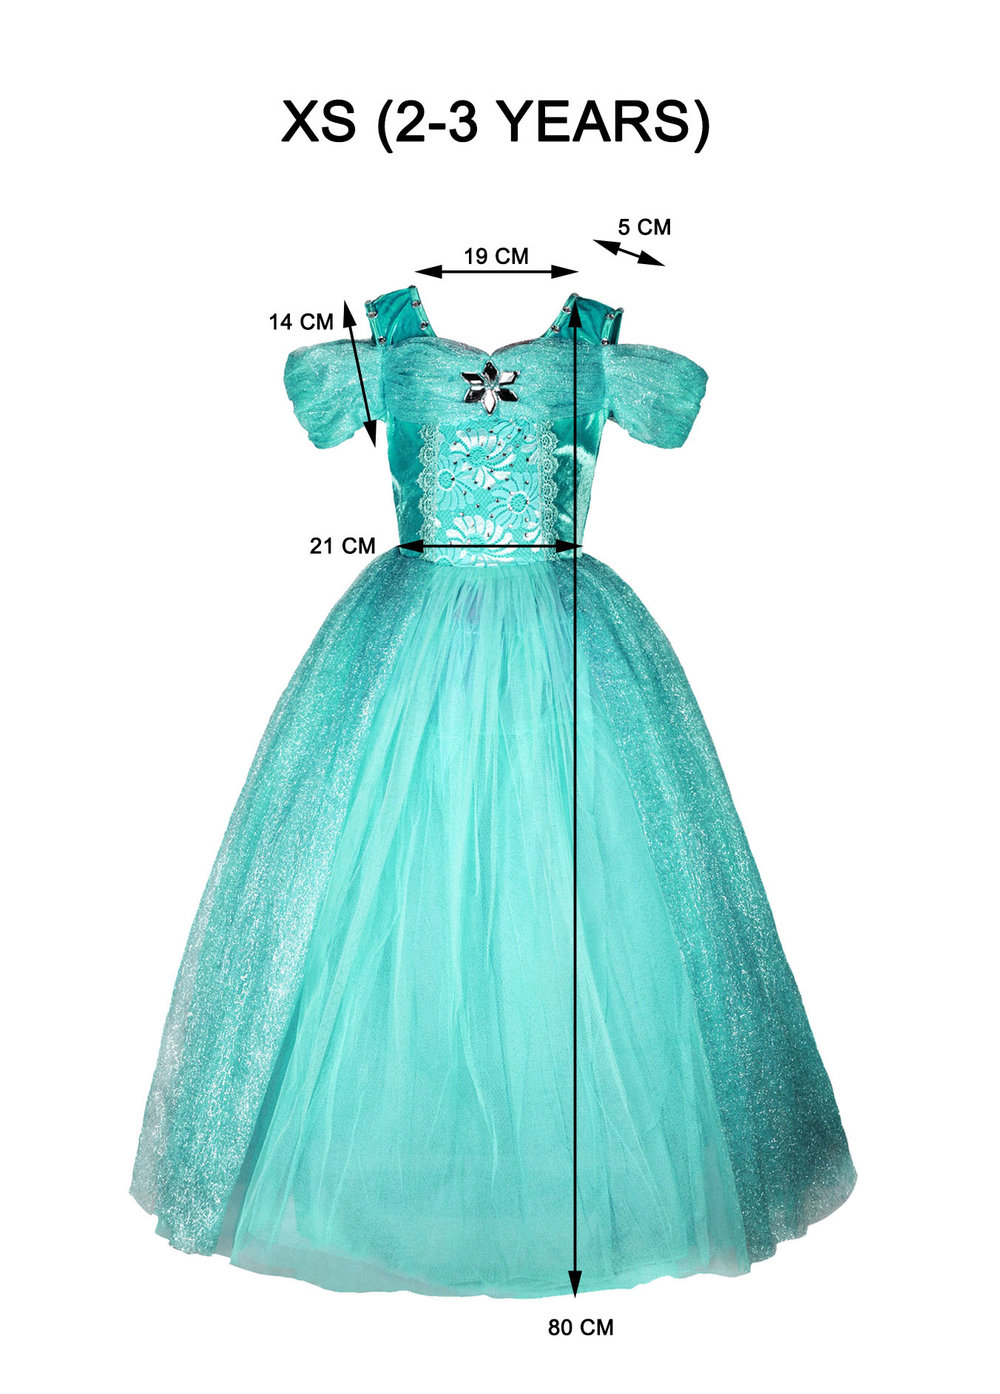 Sparkly Princess Turquoise XS.jpg